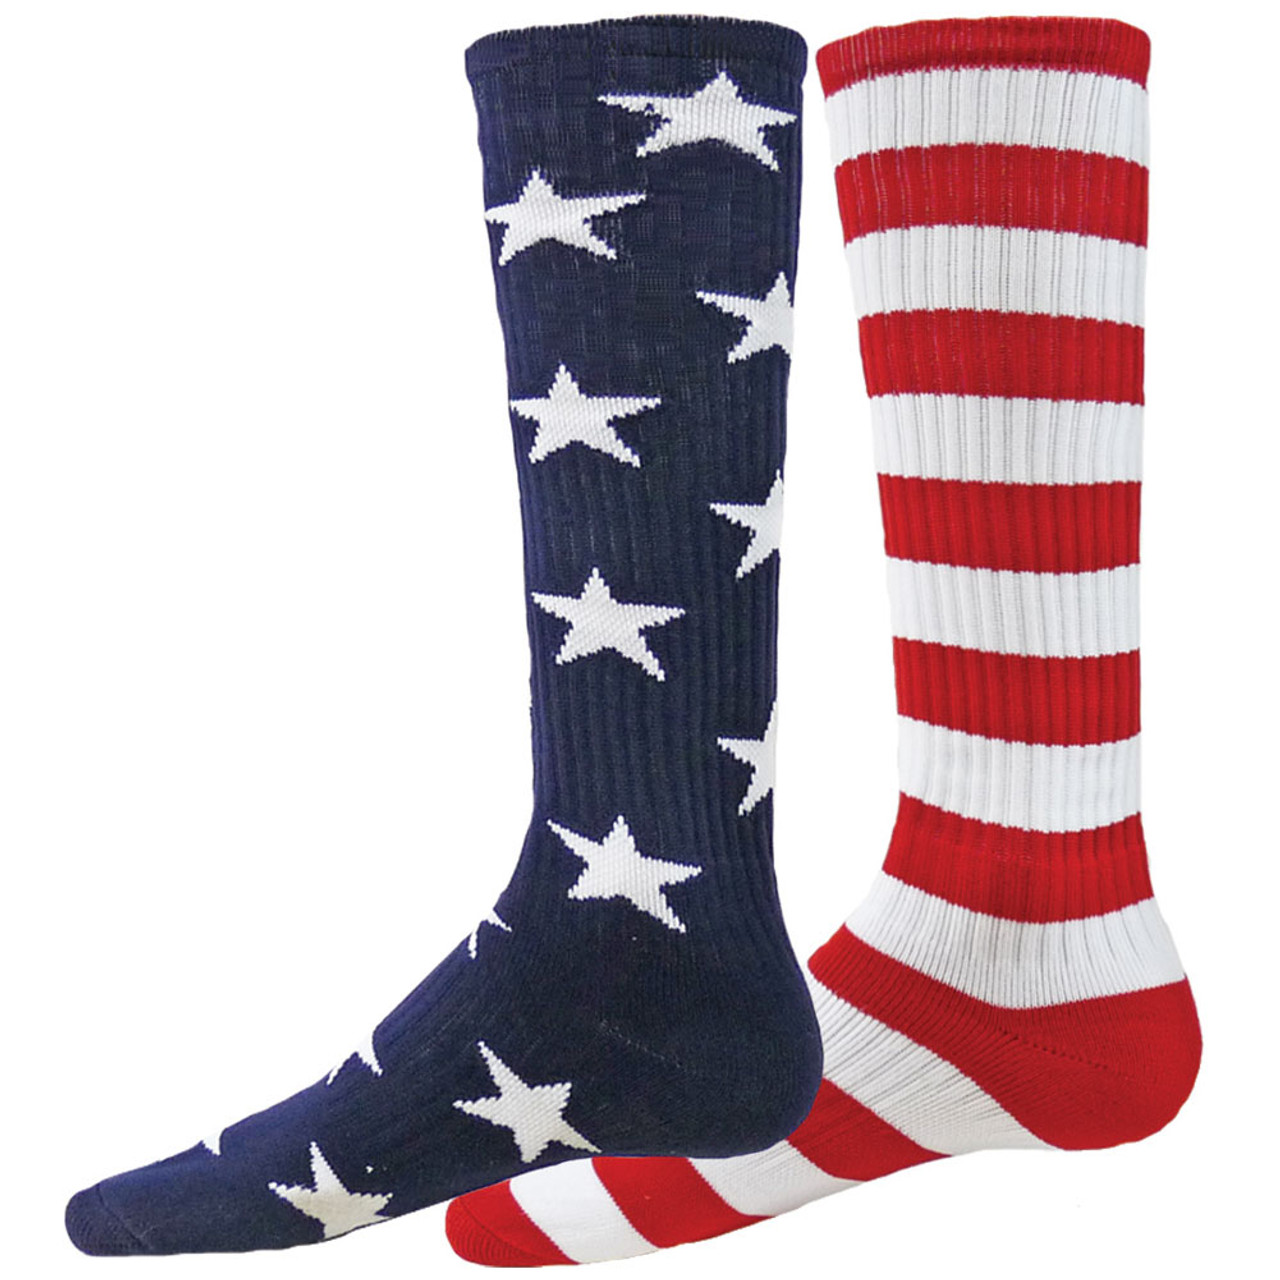 edc01f8fb Independence Mismatched Over the Calf Sport Socks - KidsFunSocks.com